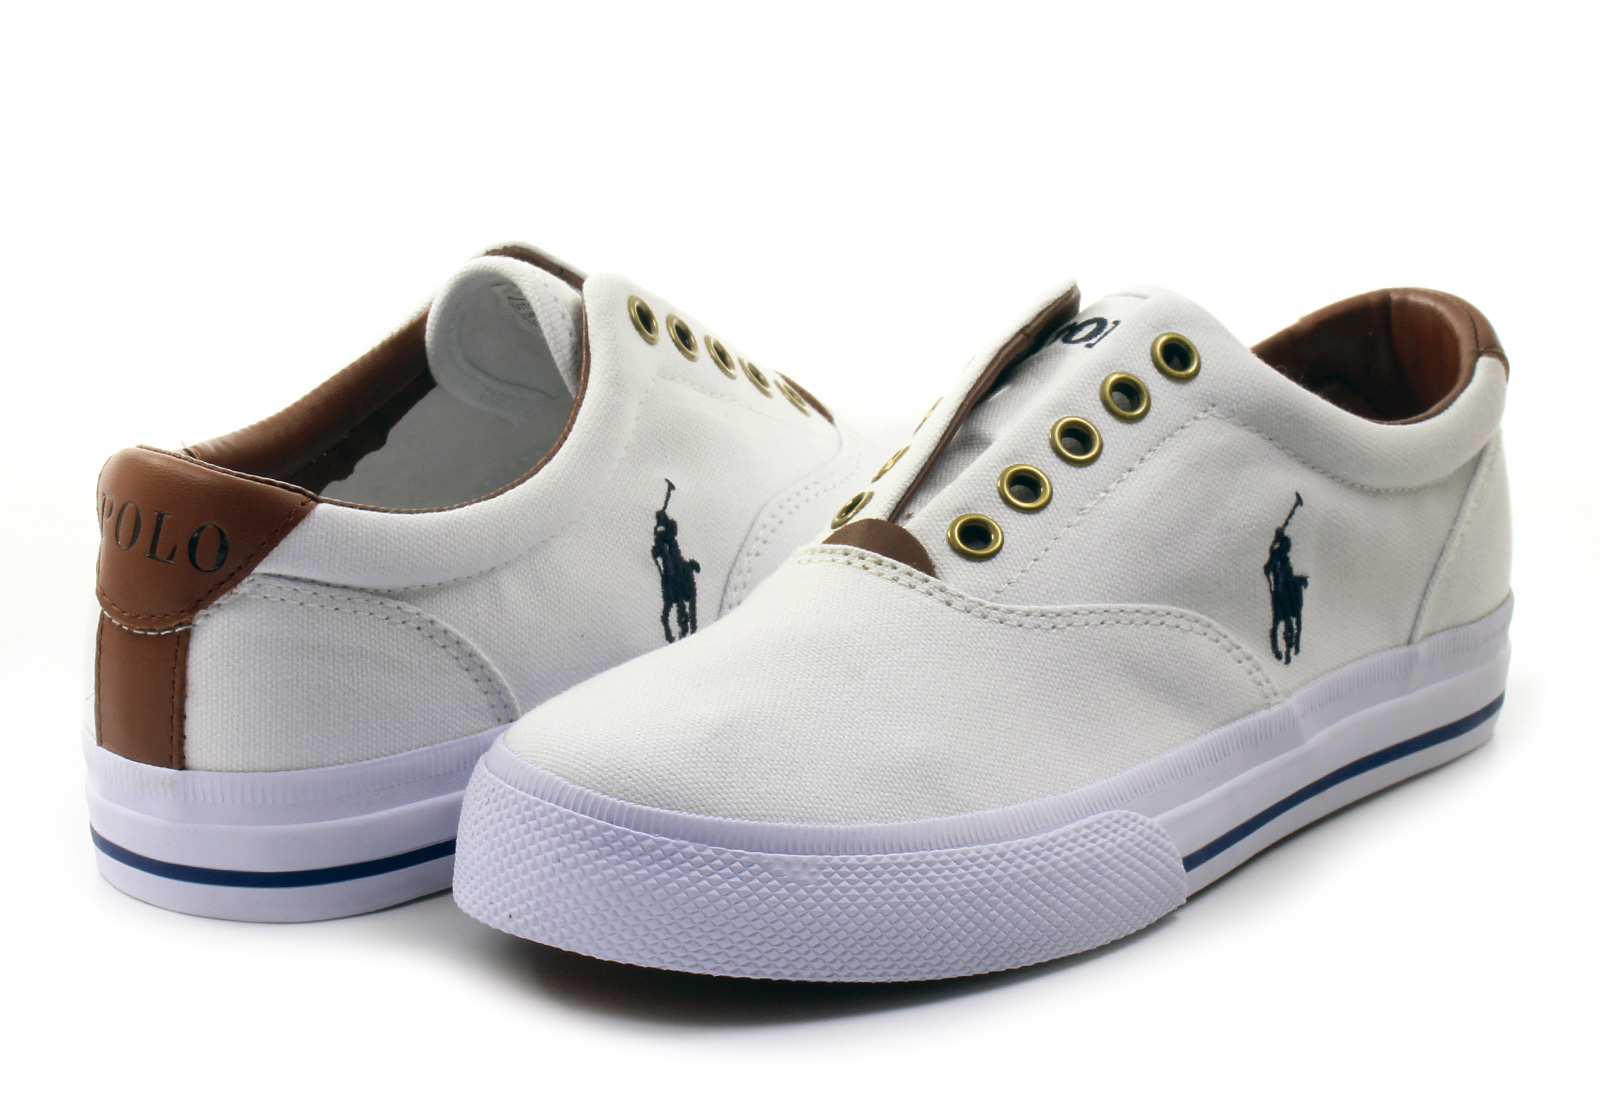 polo ralph lauren shoes vito 0229 c a1000 online shop for sneakers shoes and boots. Black Bedroom Furniture Sets. Home Design Ideas